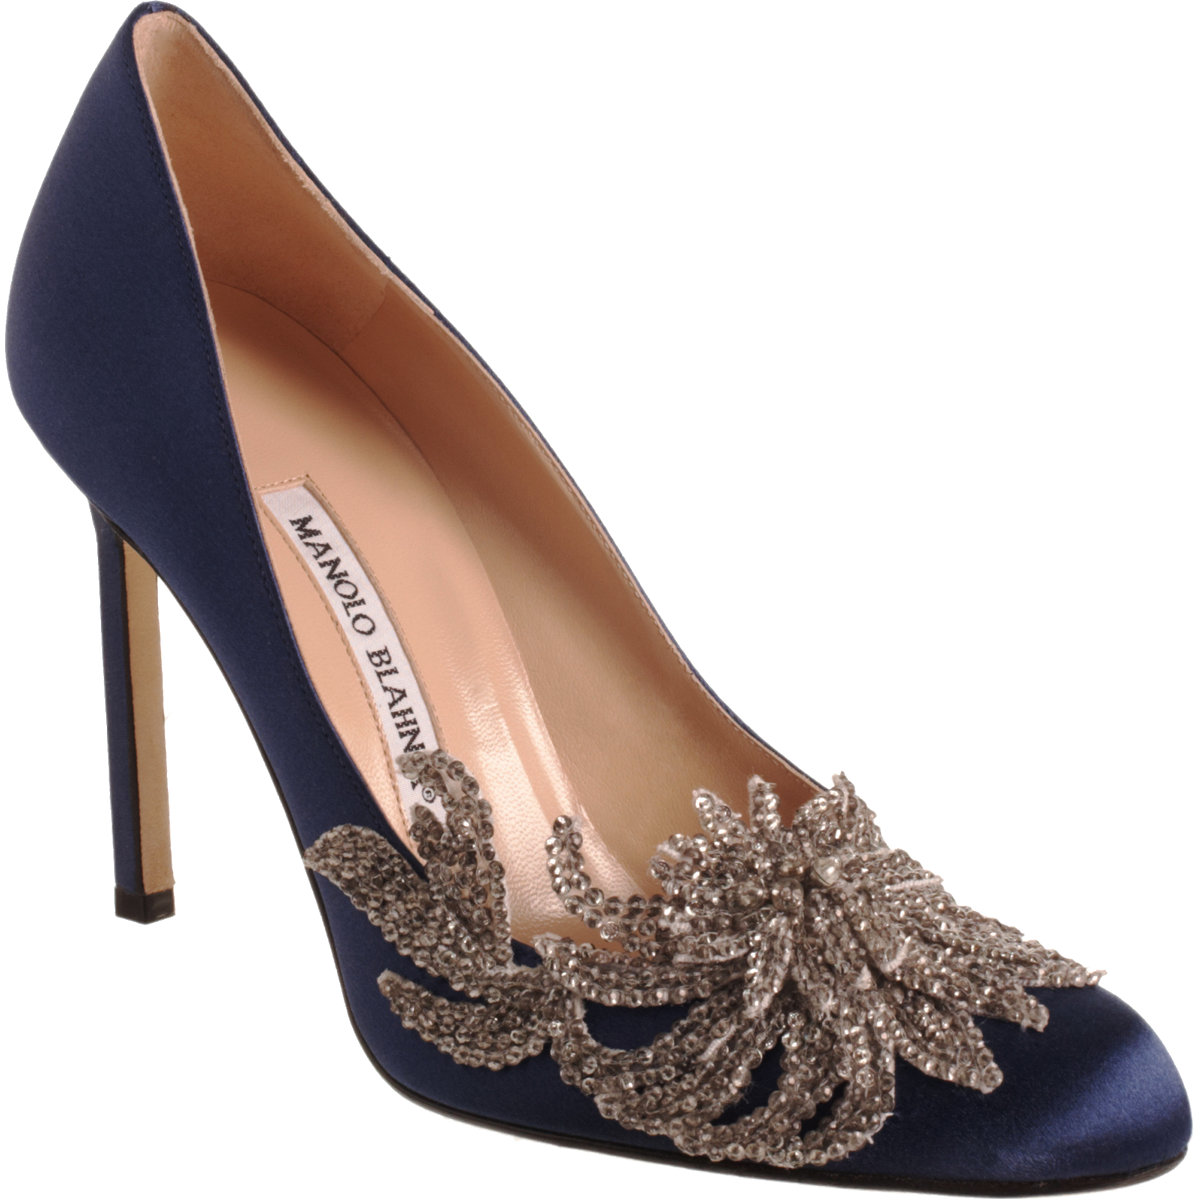 Manolo blahnik swan in blue navy lyst for Shoe designer manolo blahnik